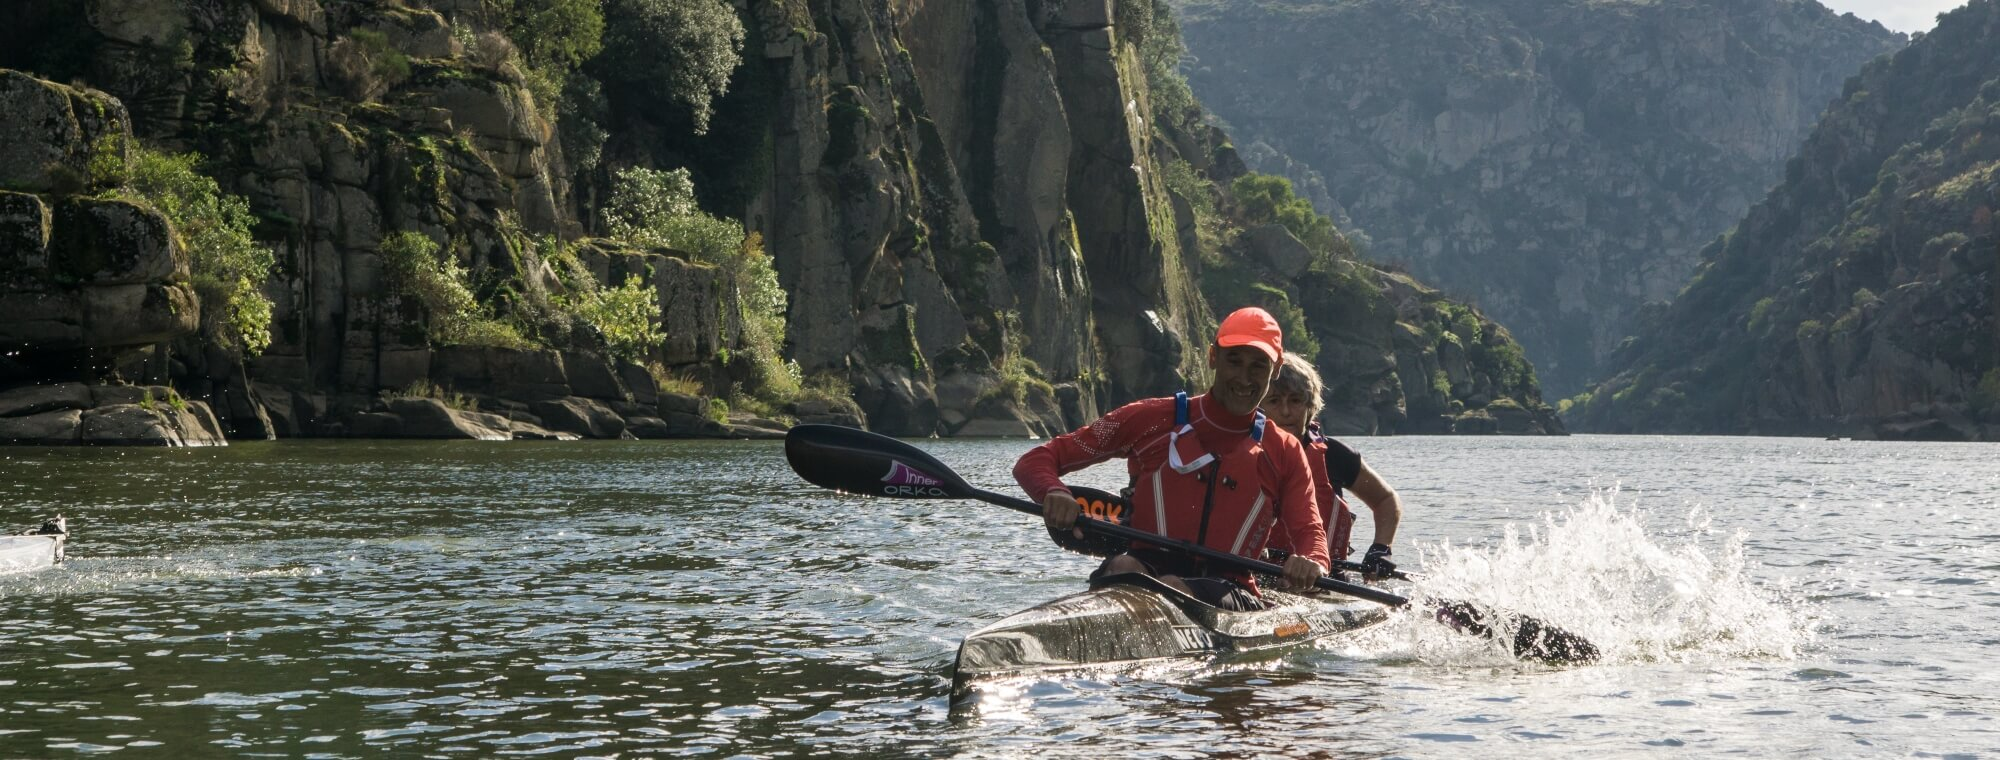 Paddle on the border between Spain and Portugal in the middle of the International Douro Nature Park